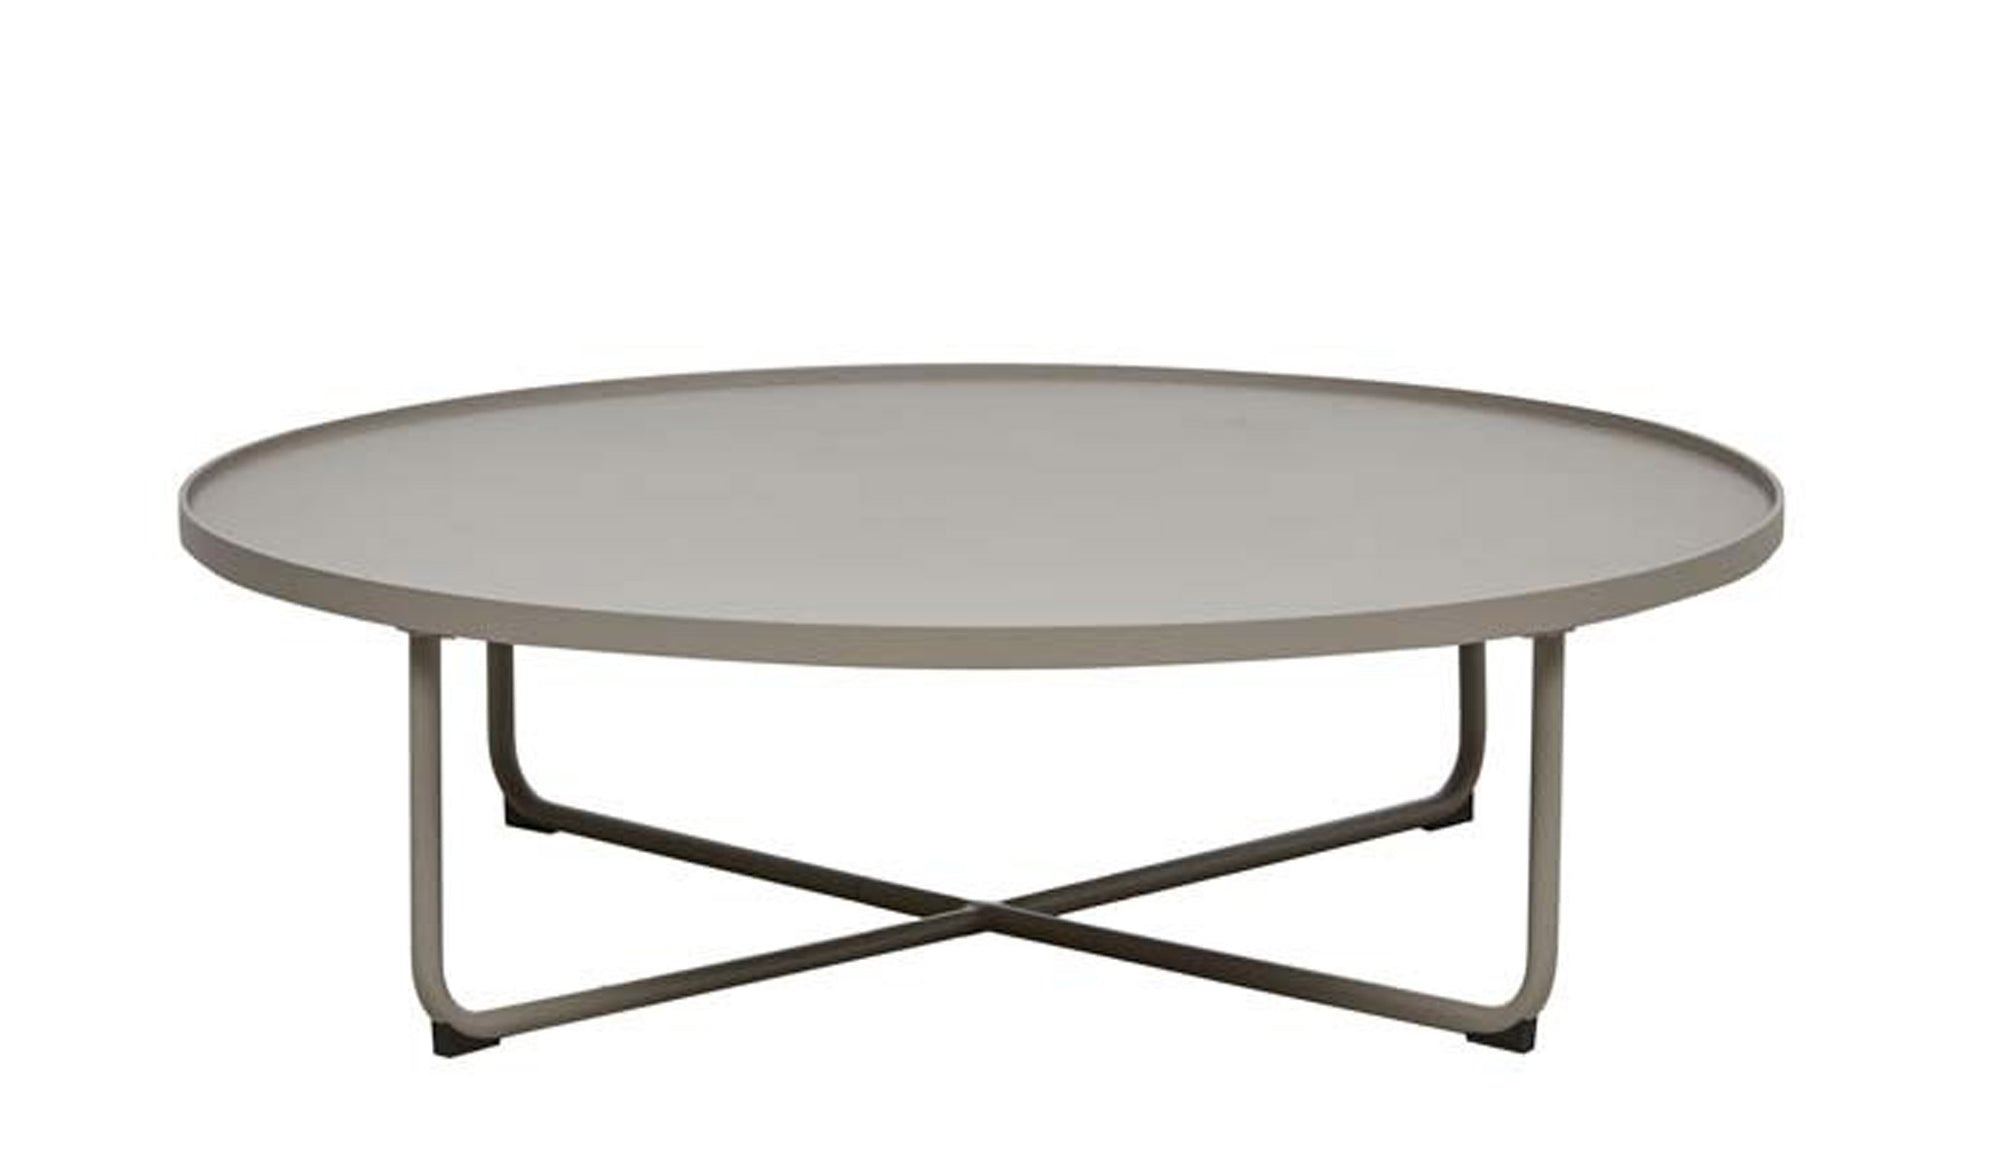 Lagoon Round Coffee Tables | Large